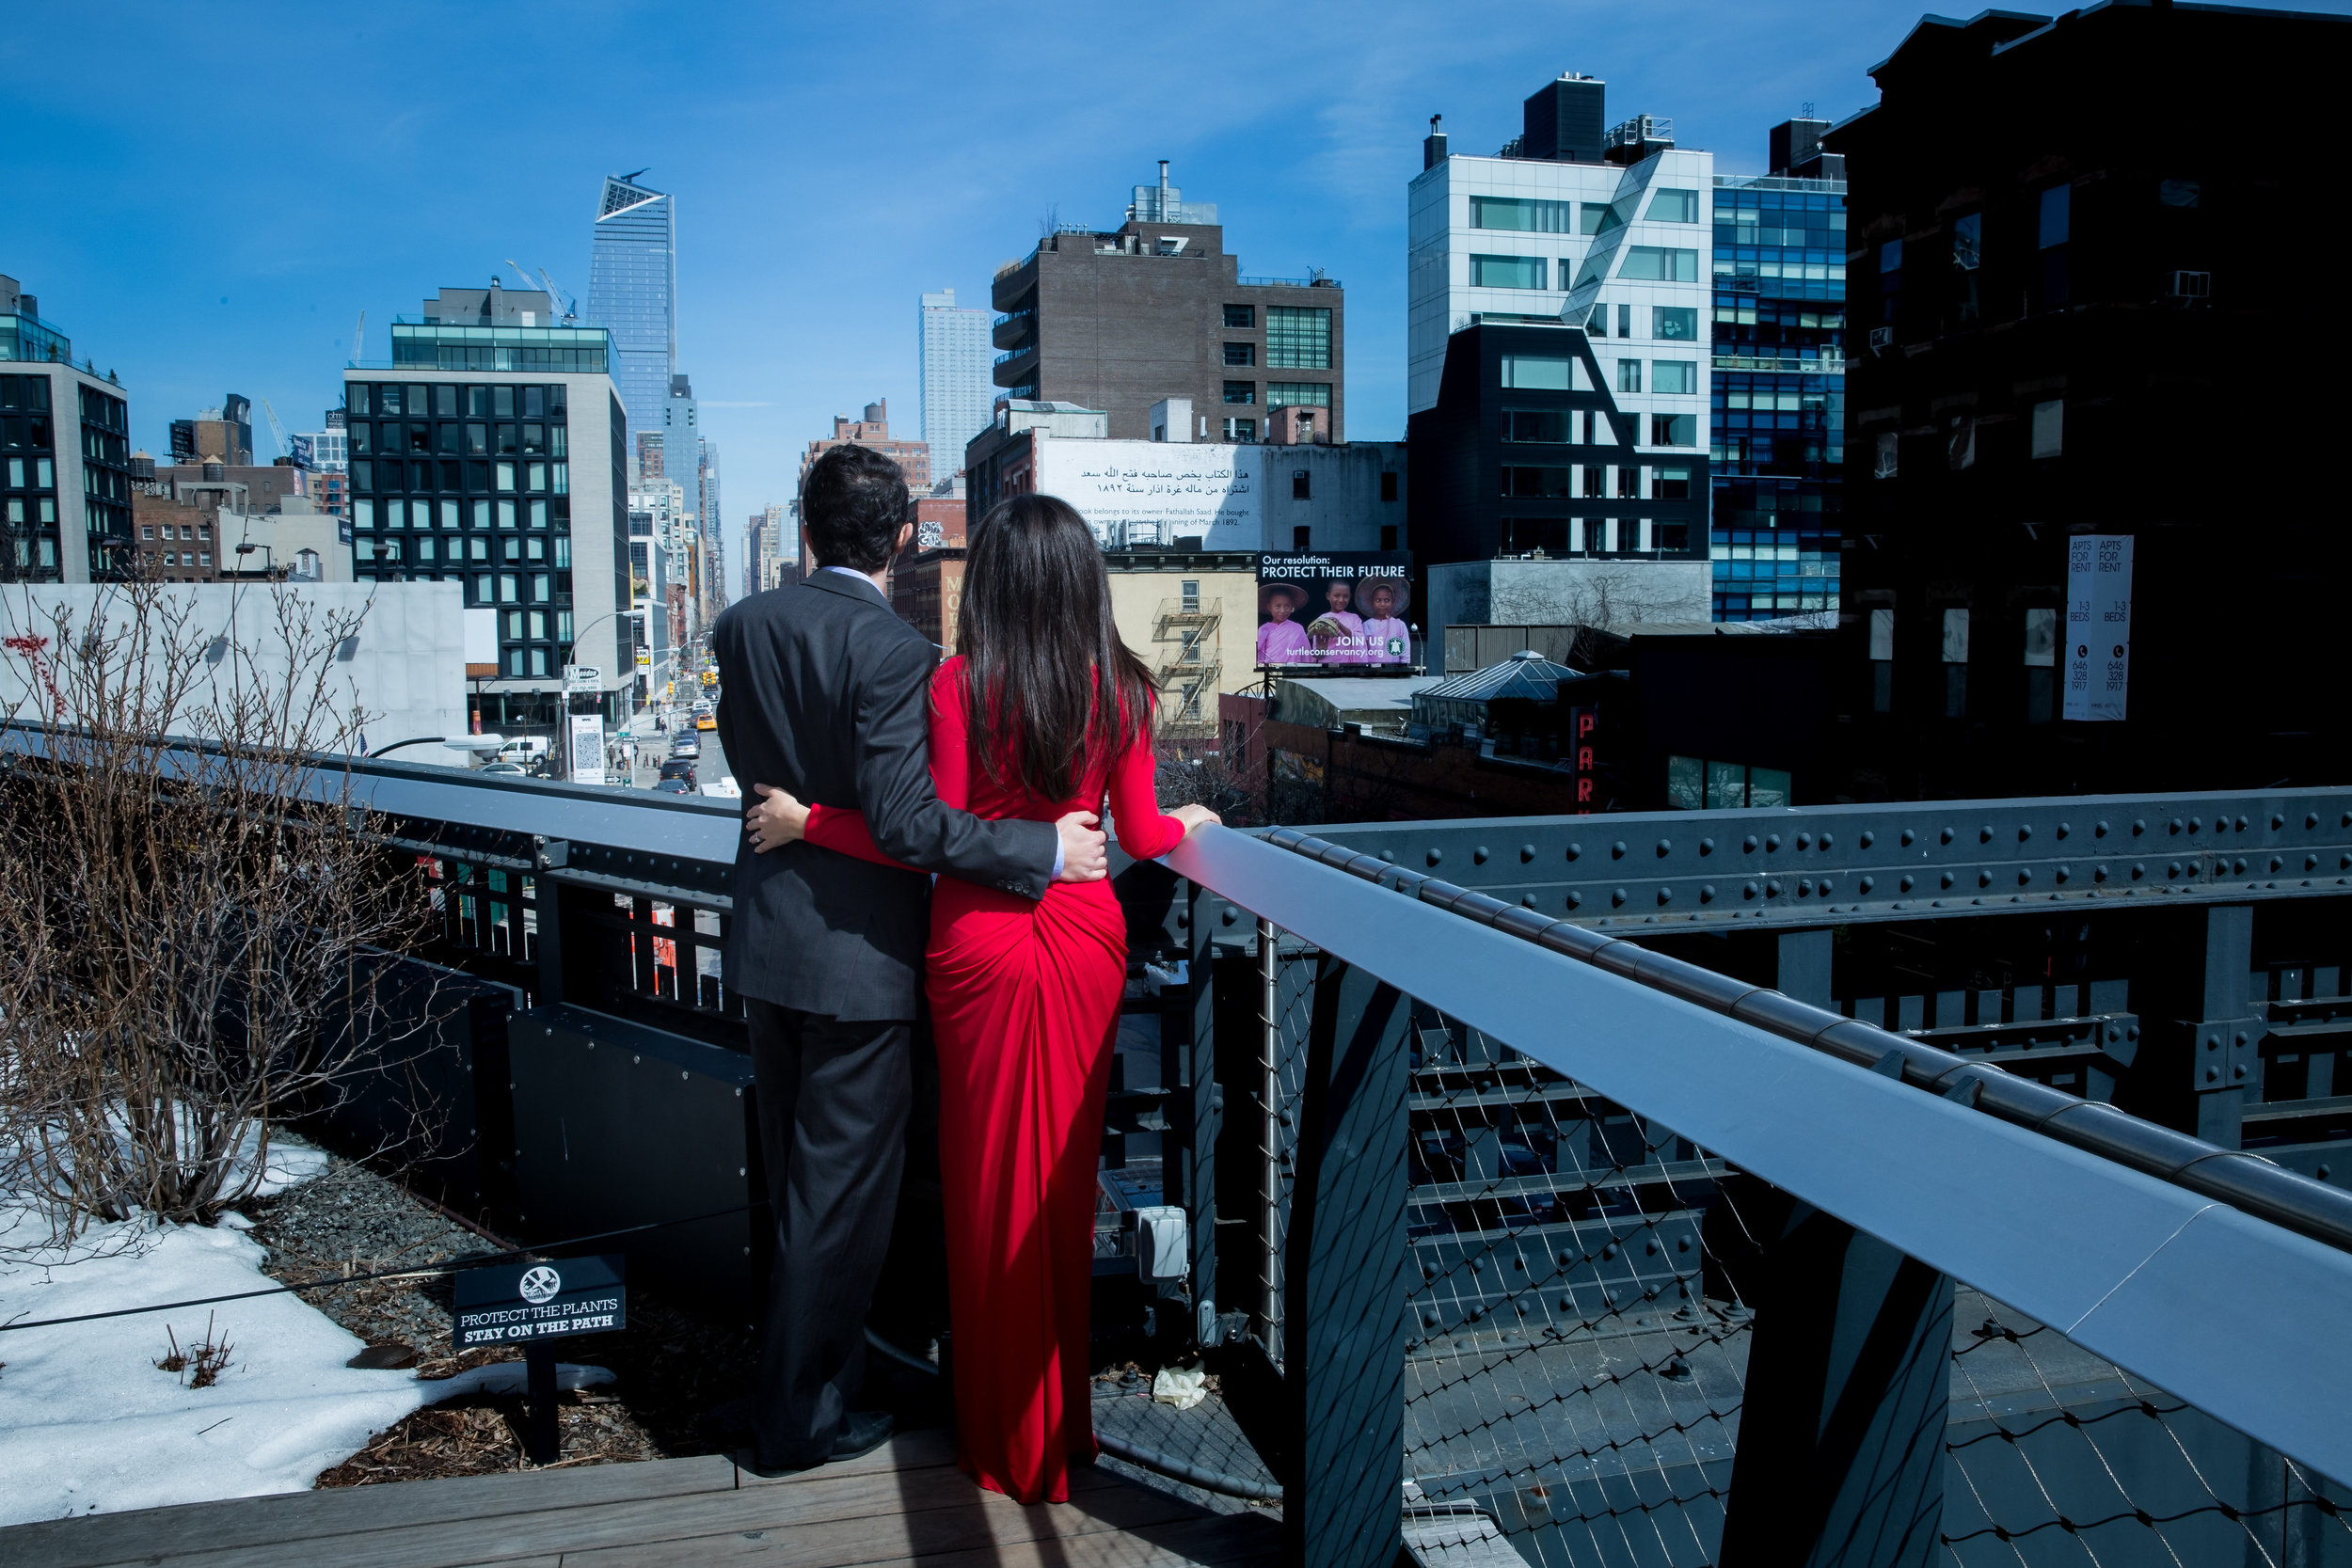 engagement-shoot-meat-packing-district-nyc-266.jpg